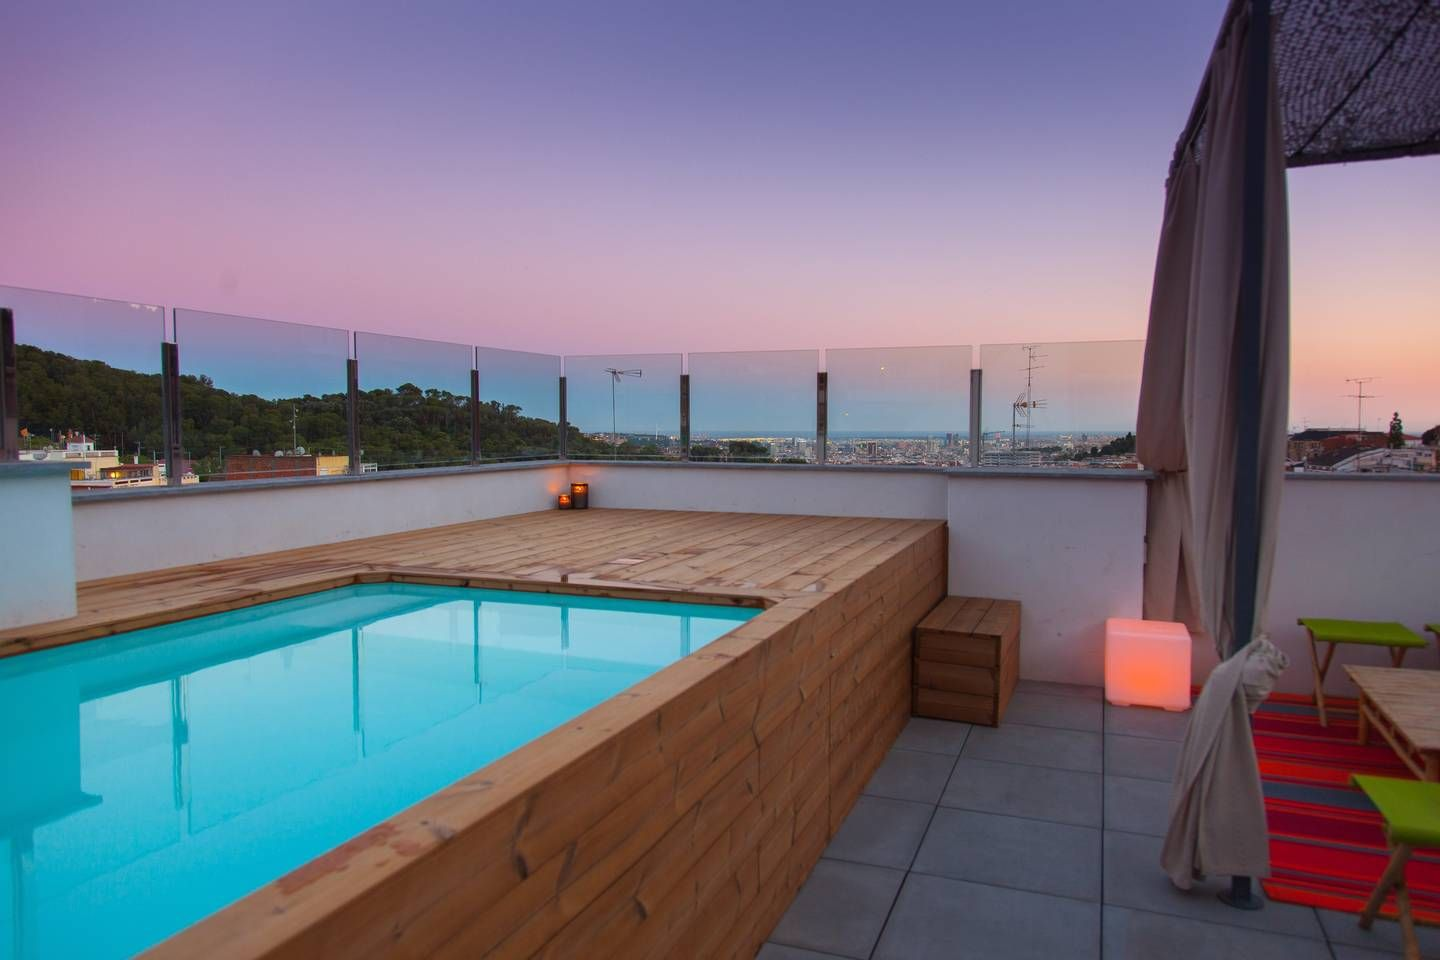 Awesome Private Suites Terrace Pool 17m Center Houses For Rent In Barcelona Catalunya Spain Vacation Home Holiday Home Renting A House